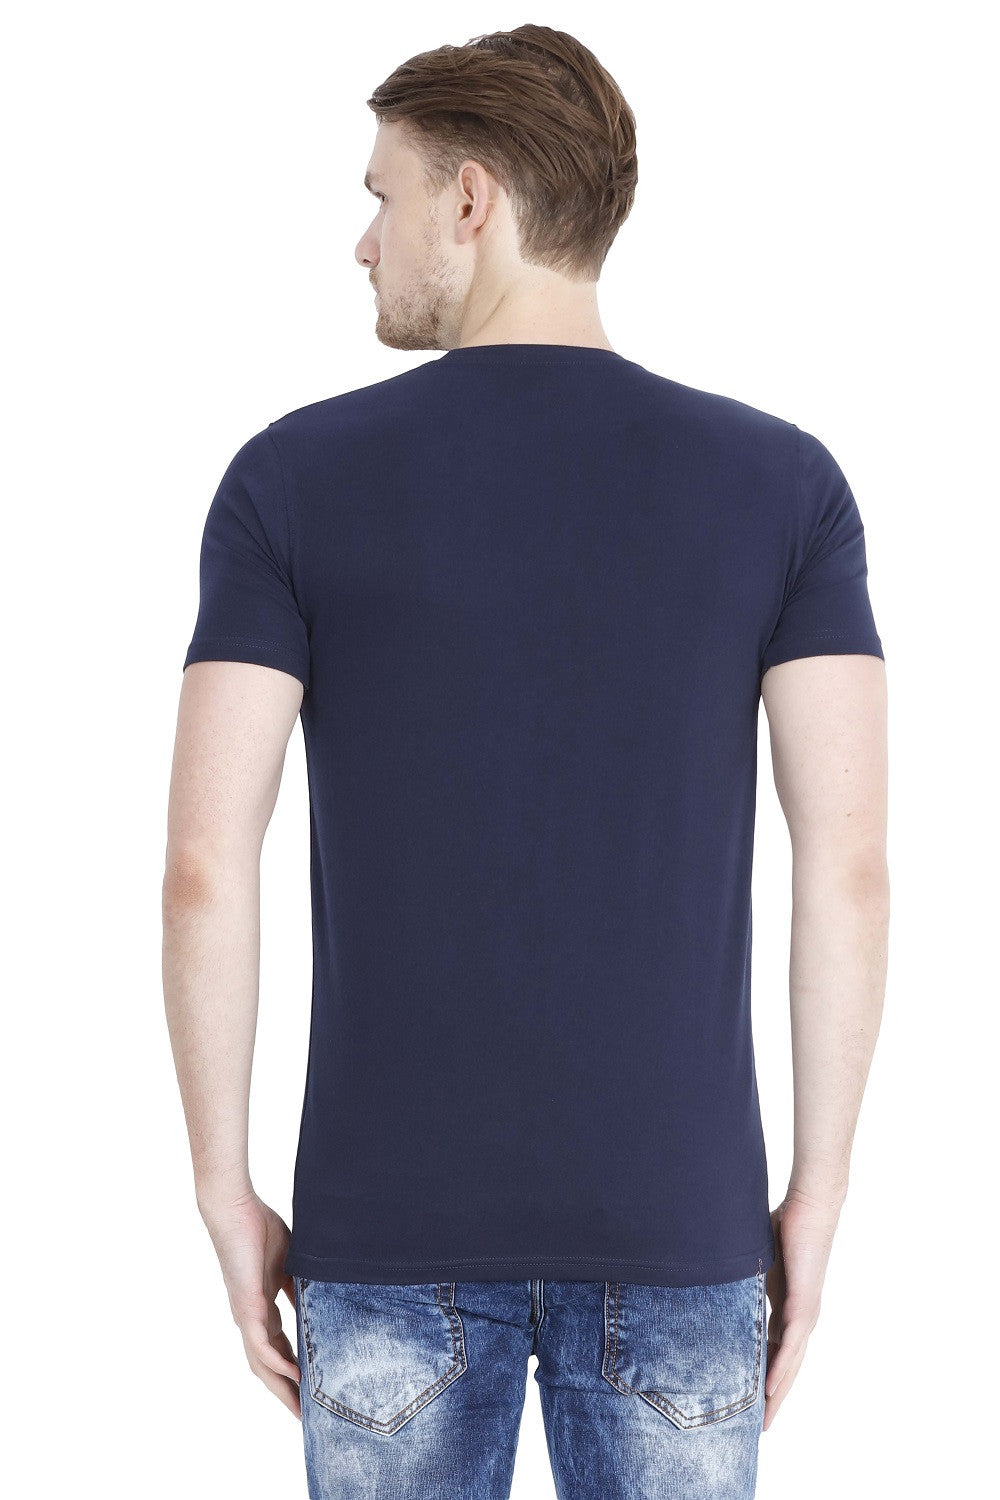 Hunt and Howe Navy Blue Laser Cut T-shirt